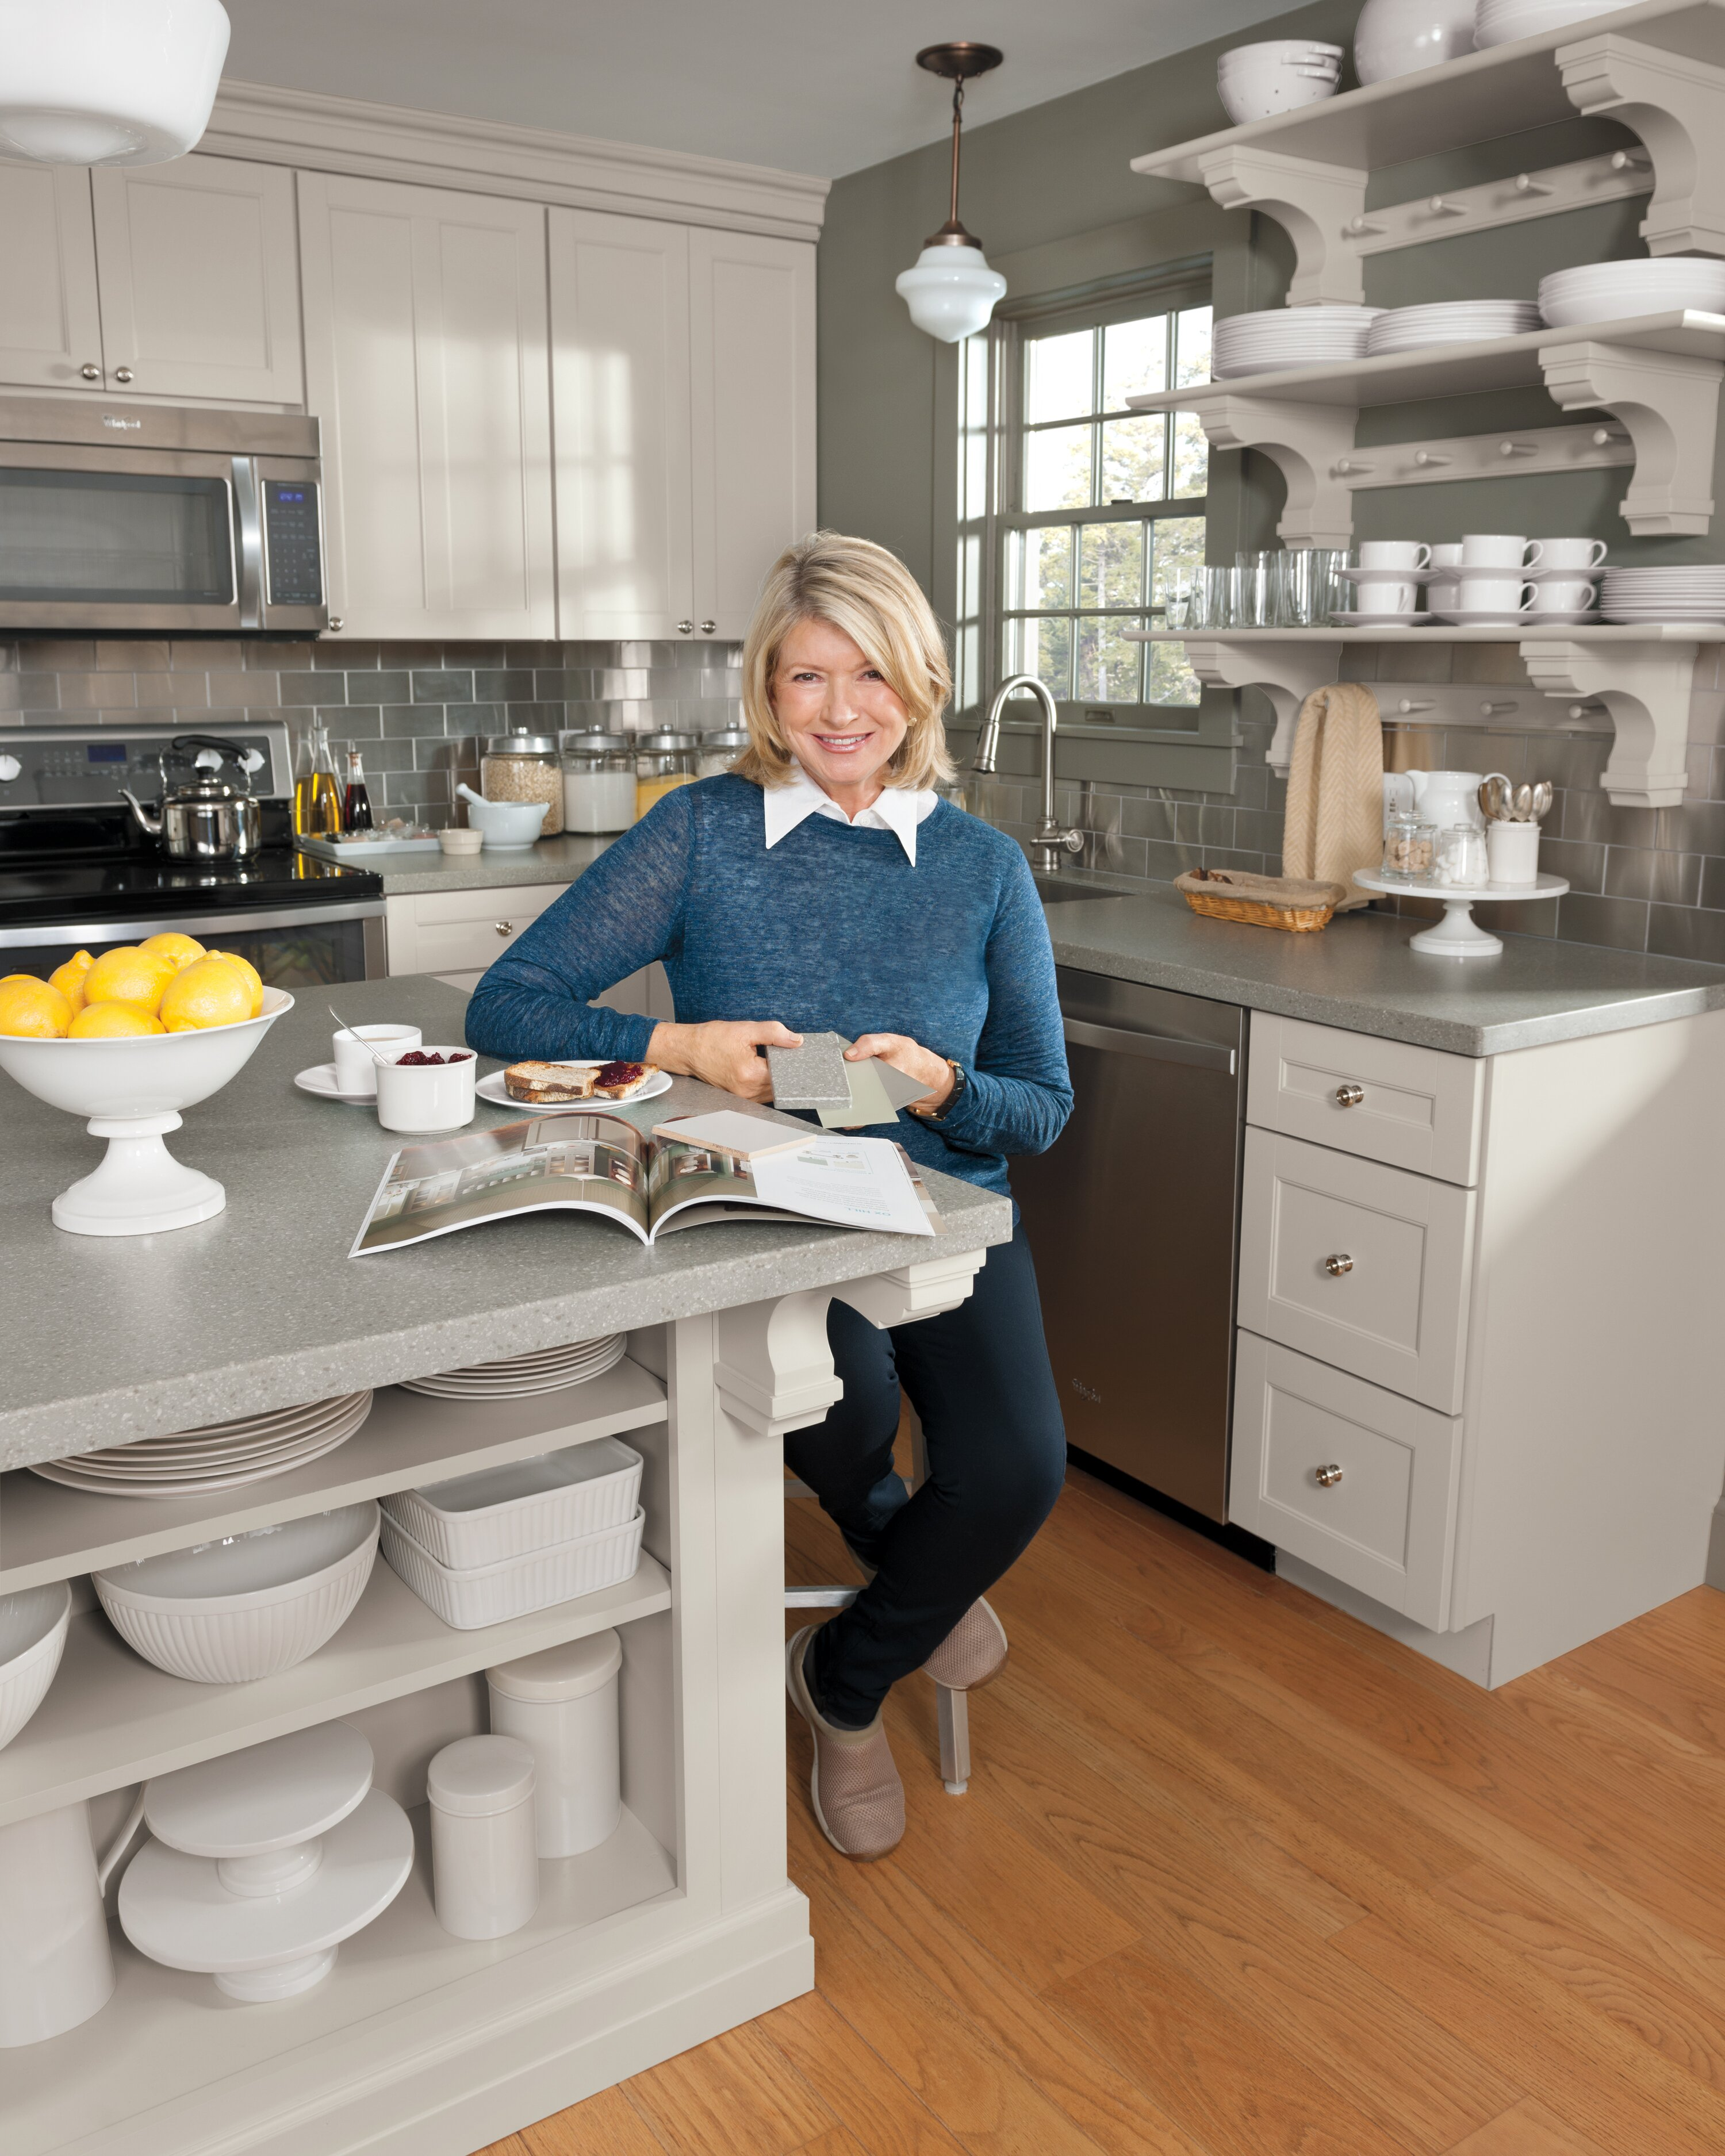 20 Beautiful Functional Kitchens To Inspire Your Own Martha Stewart